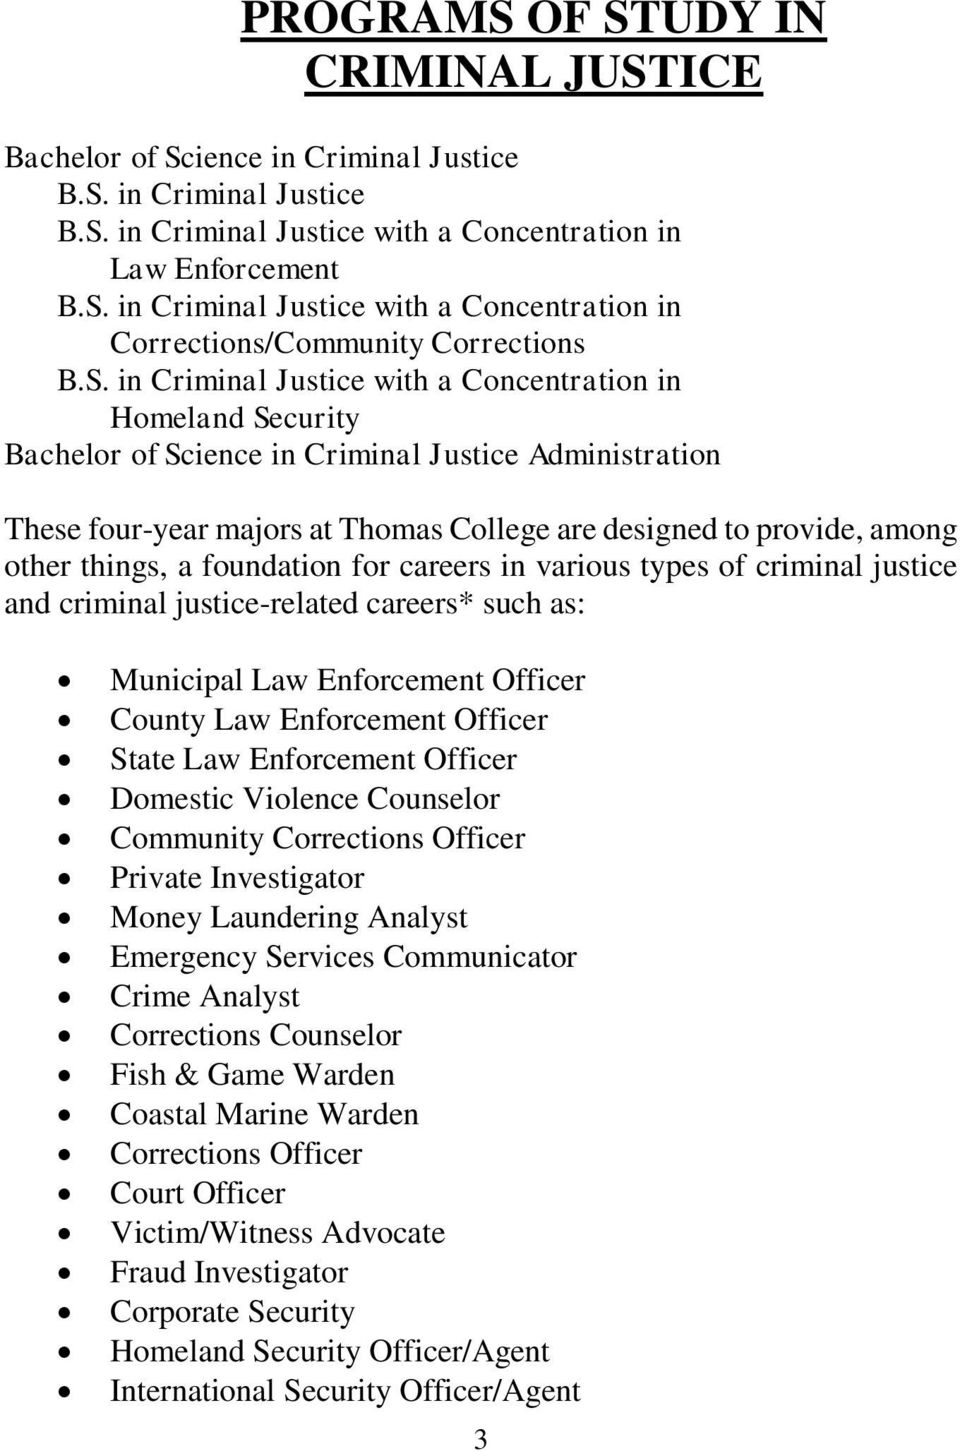 things, a foundation for careers in various types of criminal justice and criminal justice-related careers* such as: Municipal Law Enforcement Officer County Law Enforcement Officer State Law